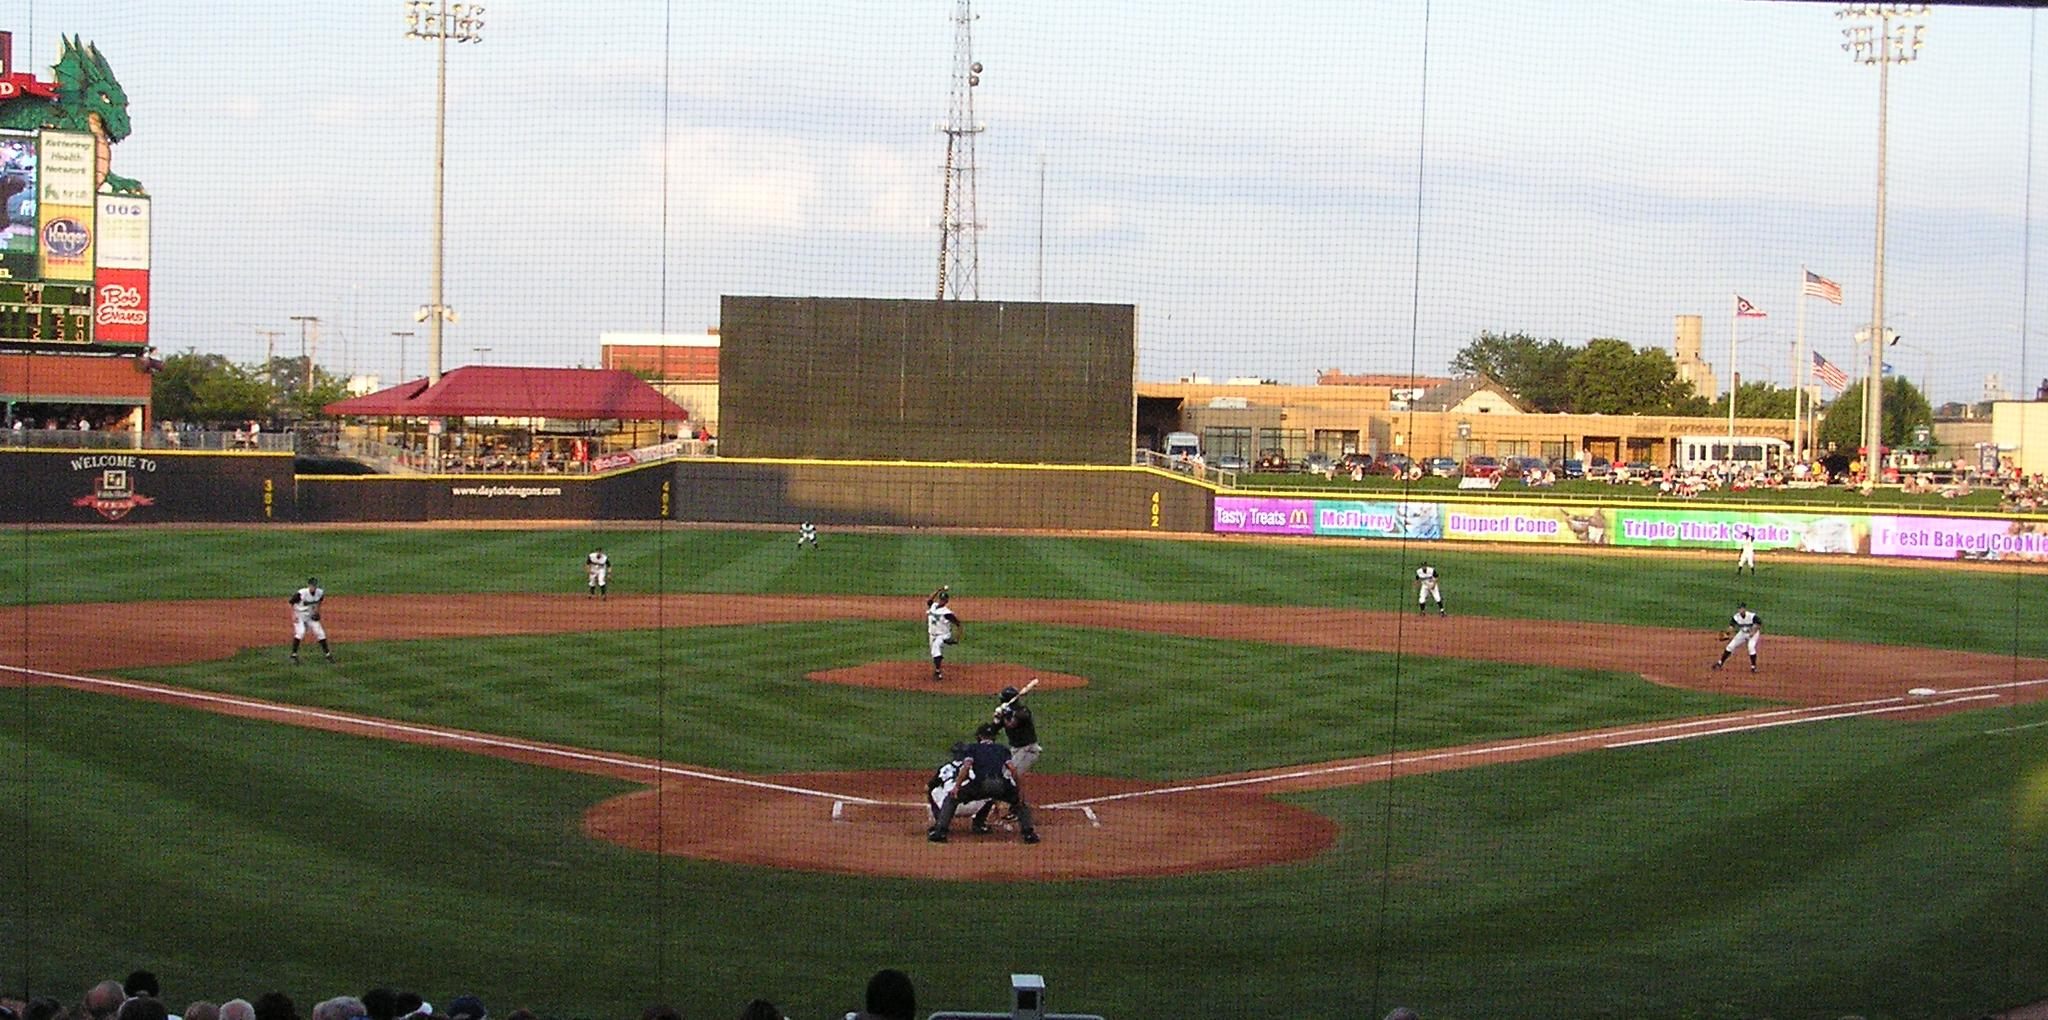 Game Action - Fifth Third Field - Dayton Ohio